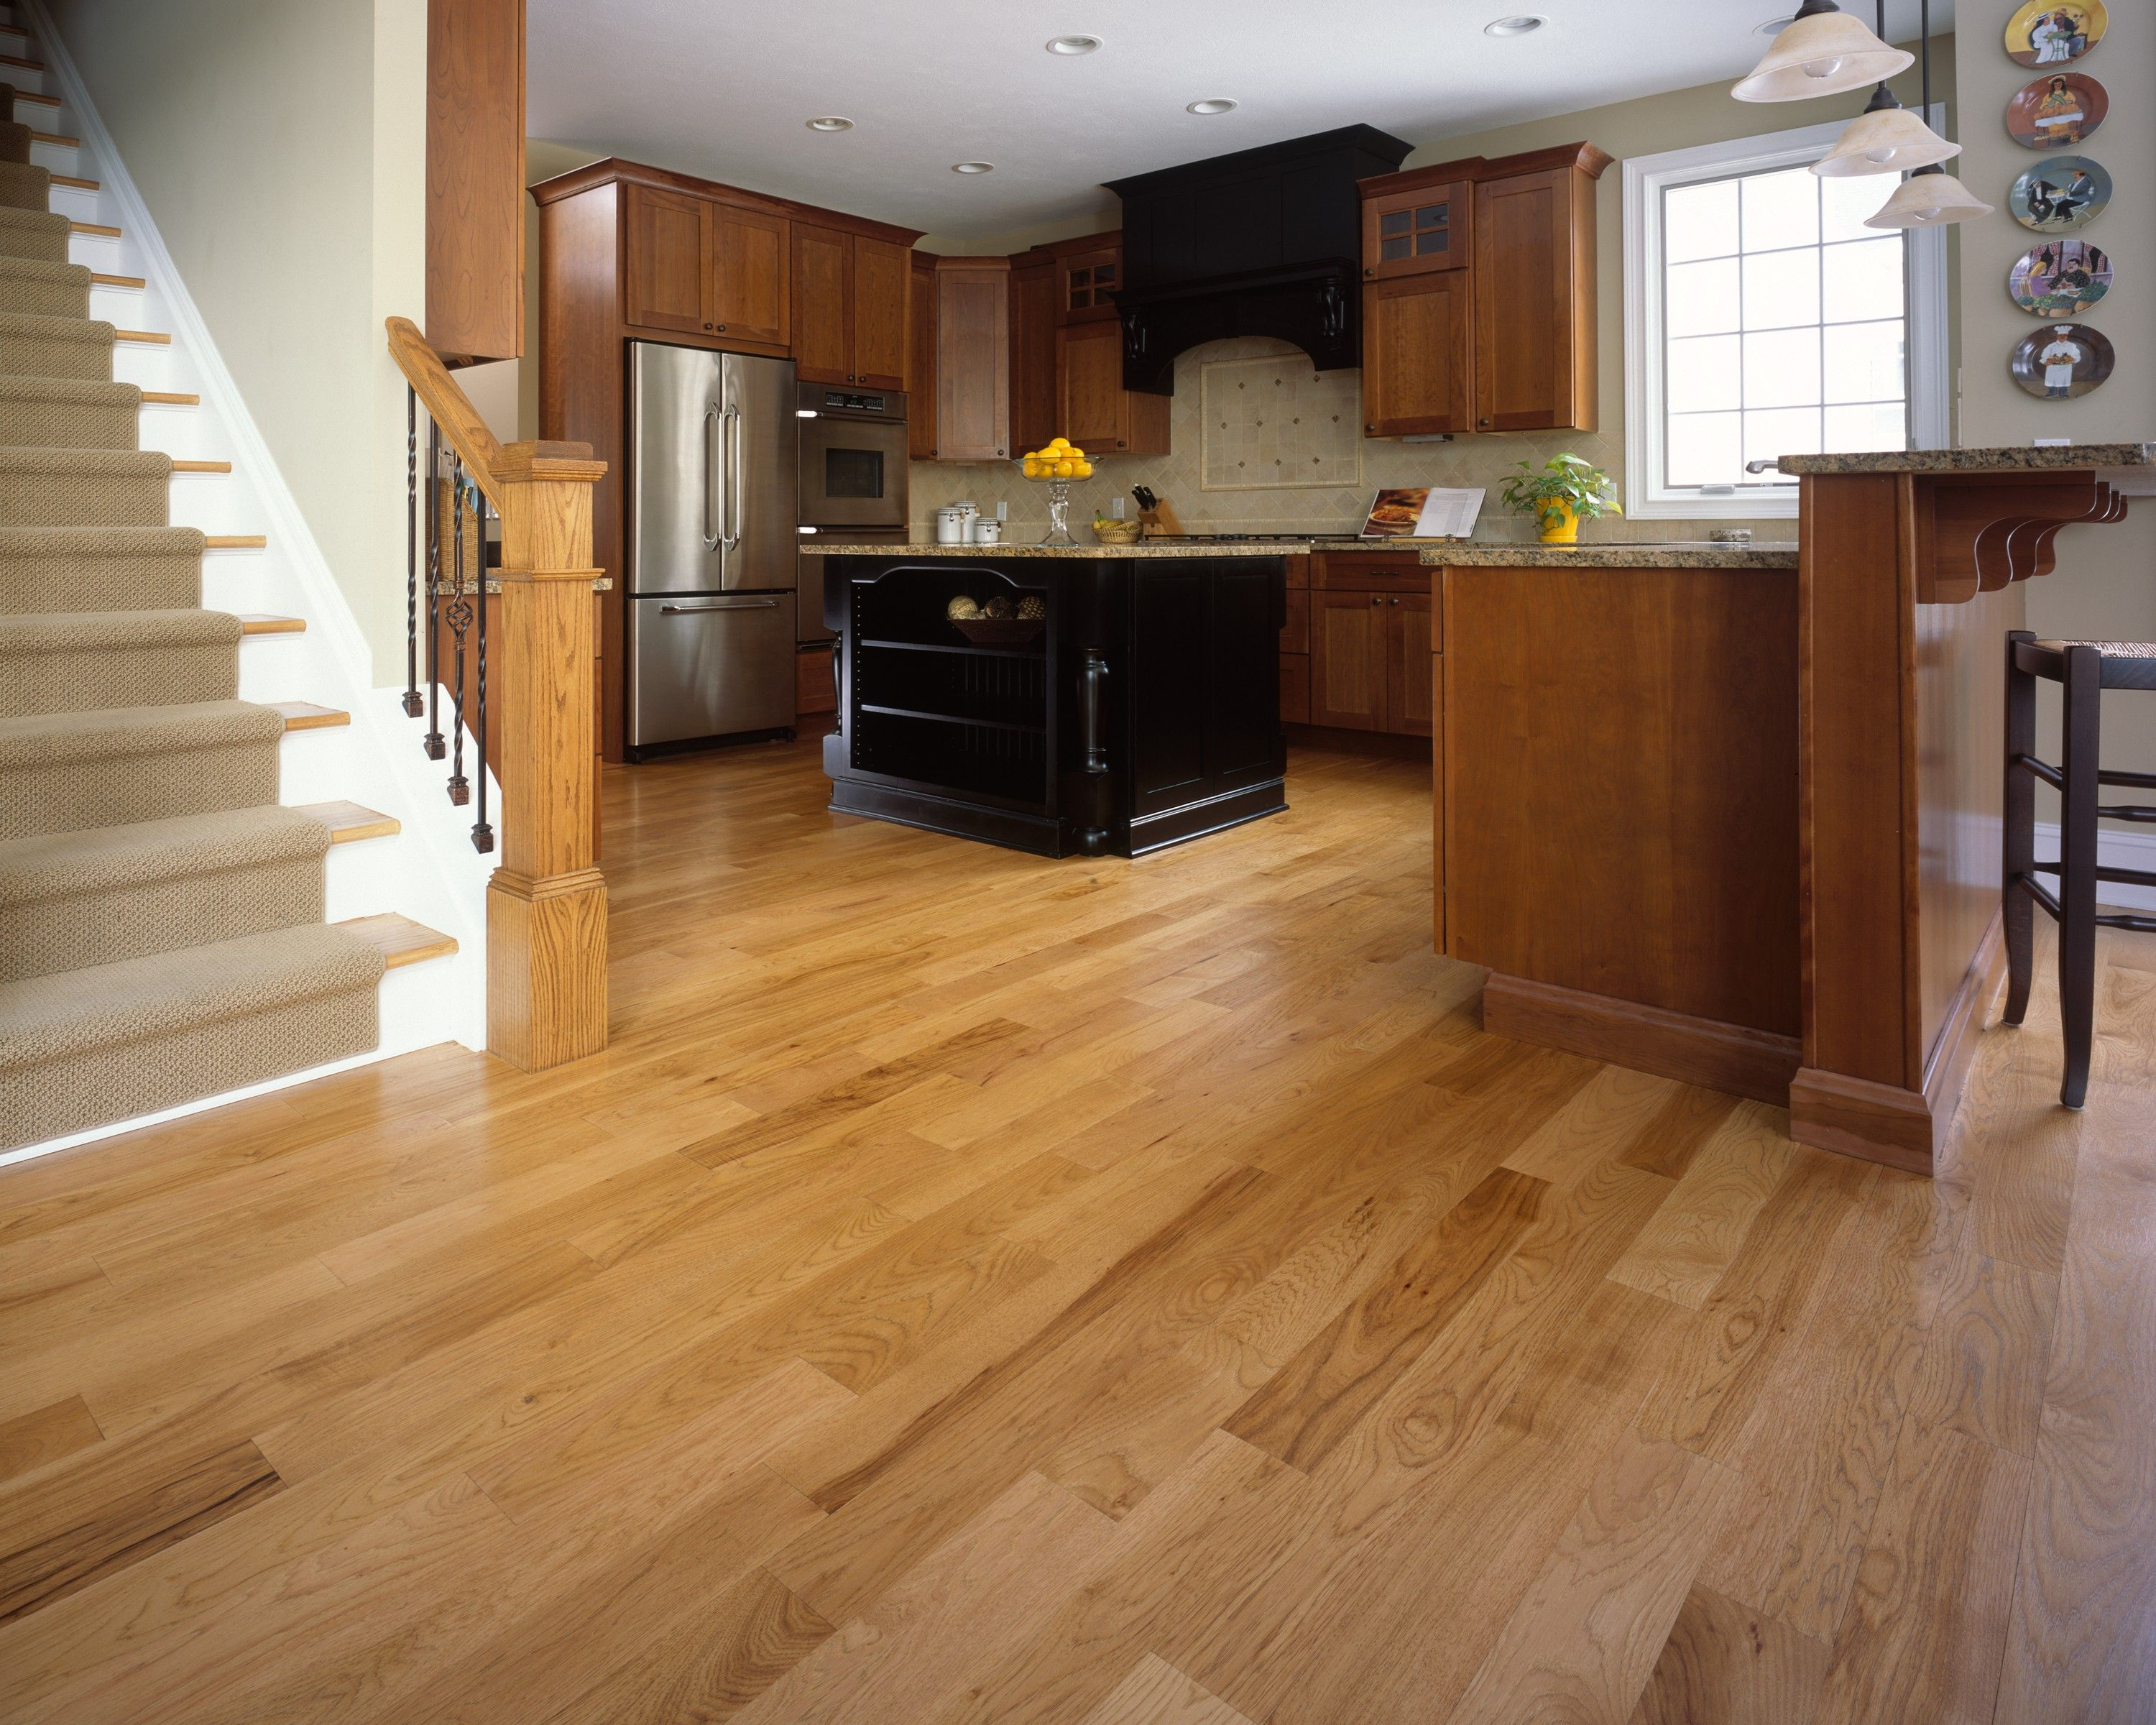 koa my home hardwood flooring oak brazilian stained floor pinterest awesome terrific beautiful floors